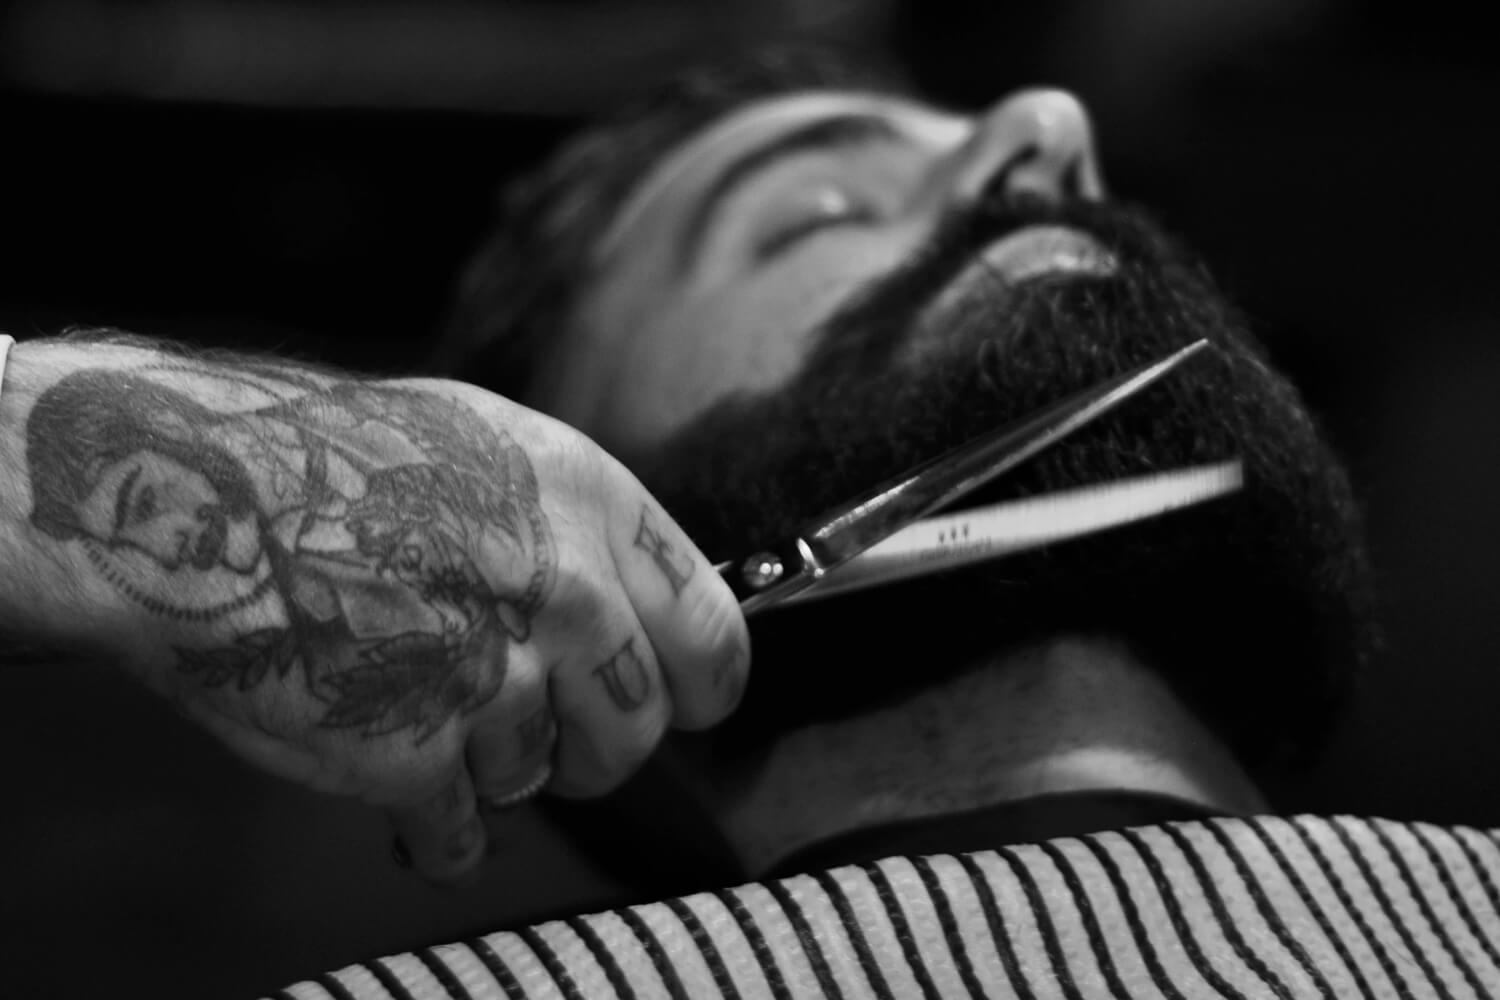 Reason your Barber might want to punch you in the Face